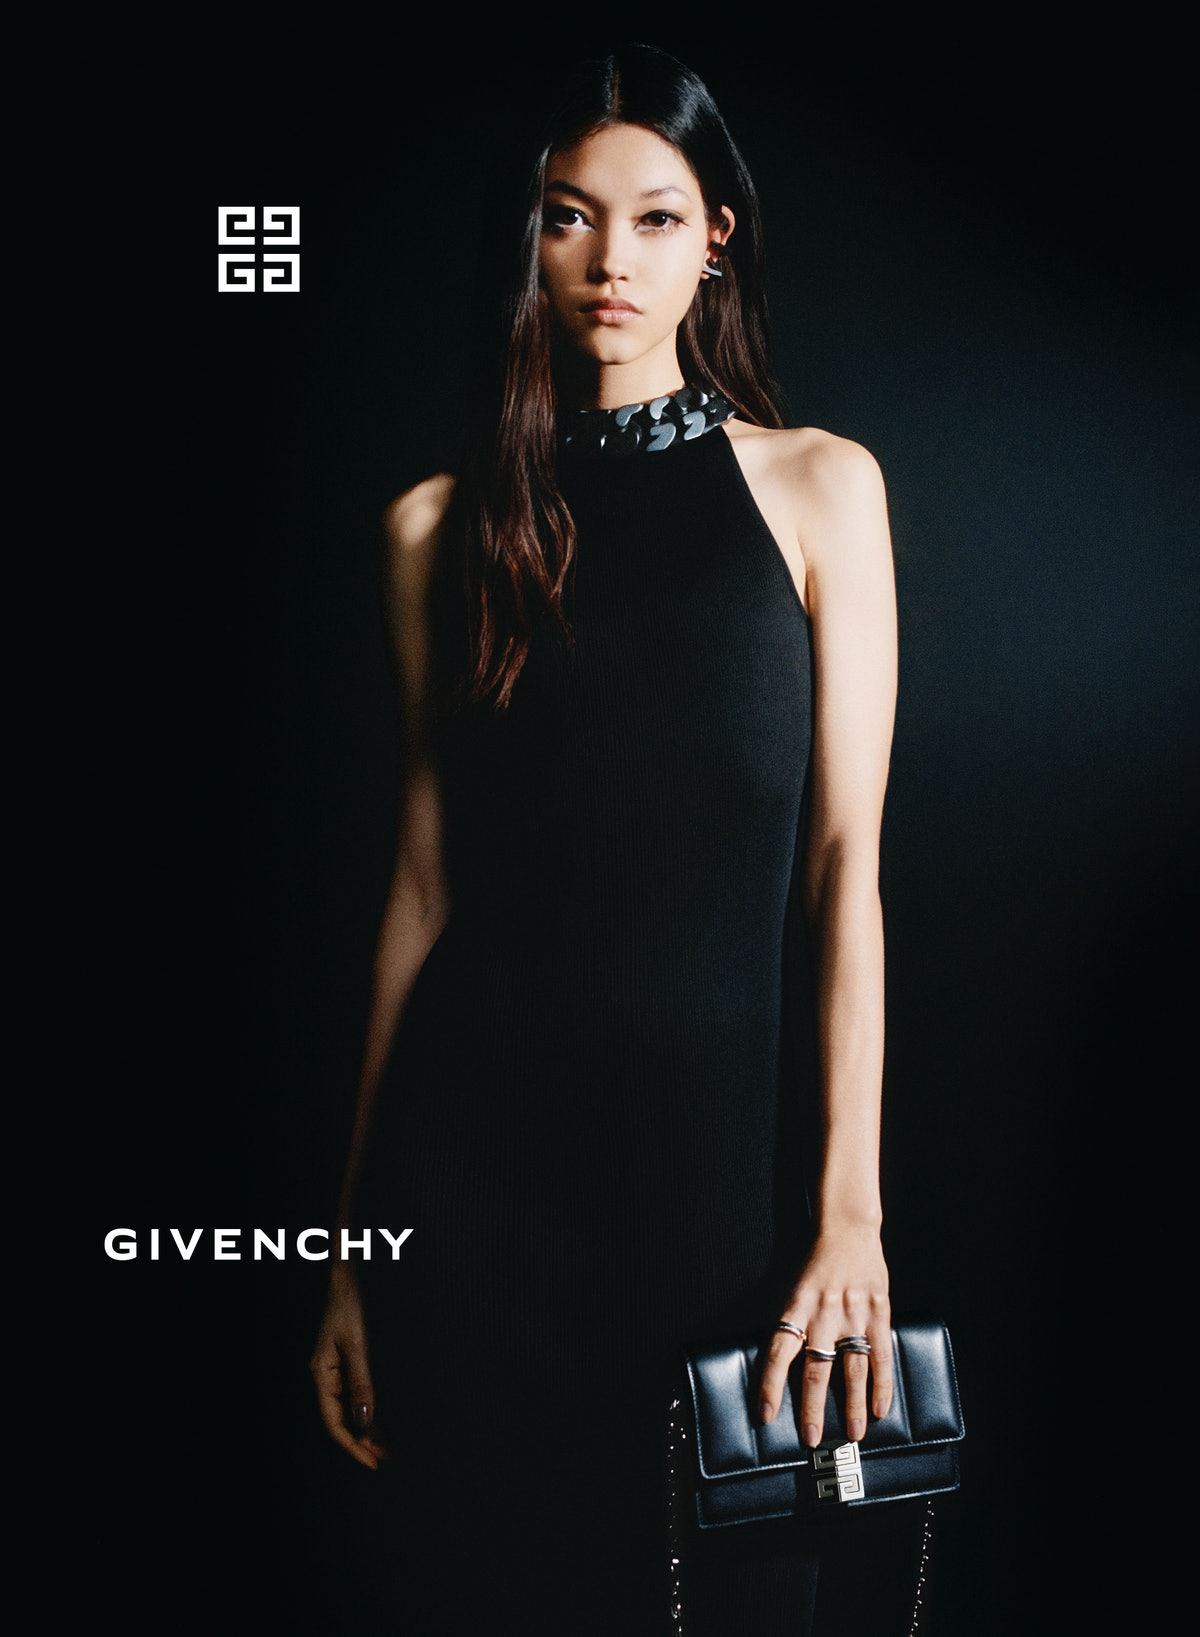 Givenchy Fall 2021 campaign.